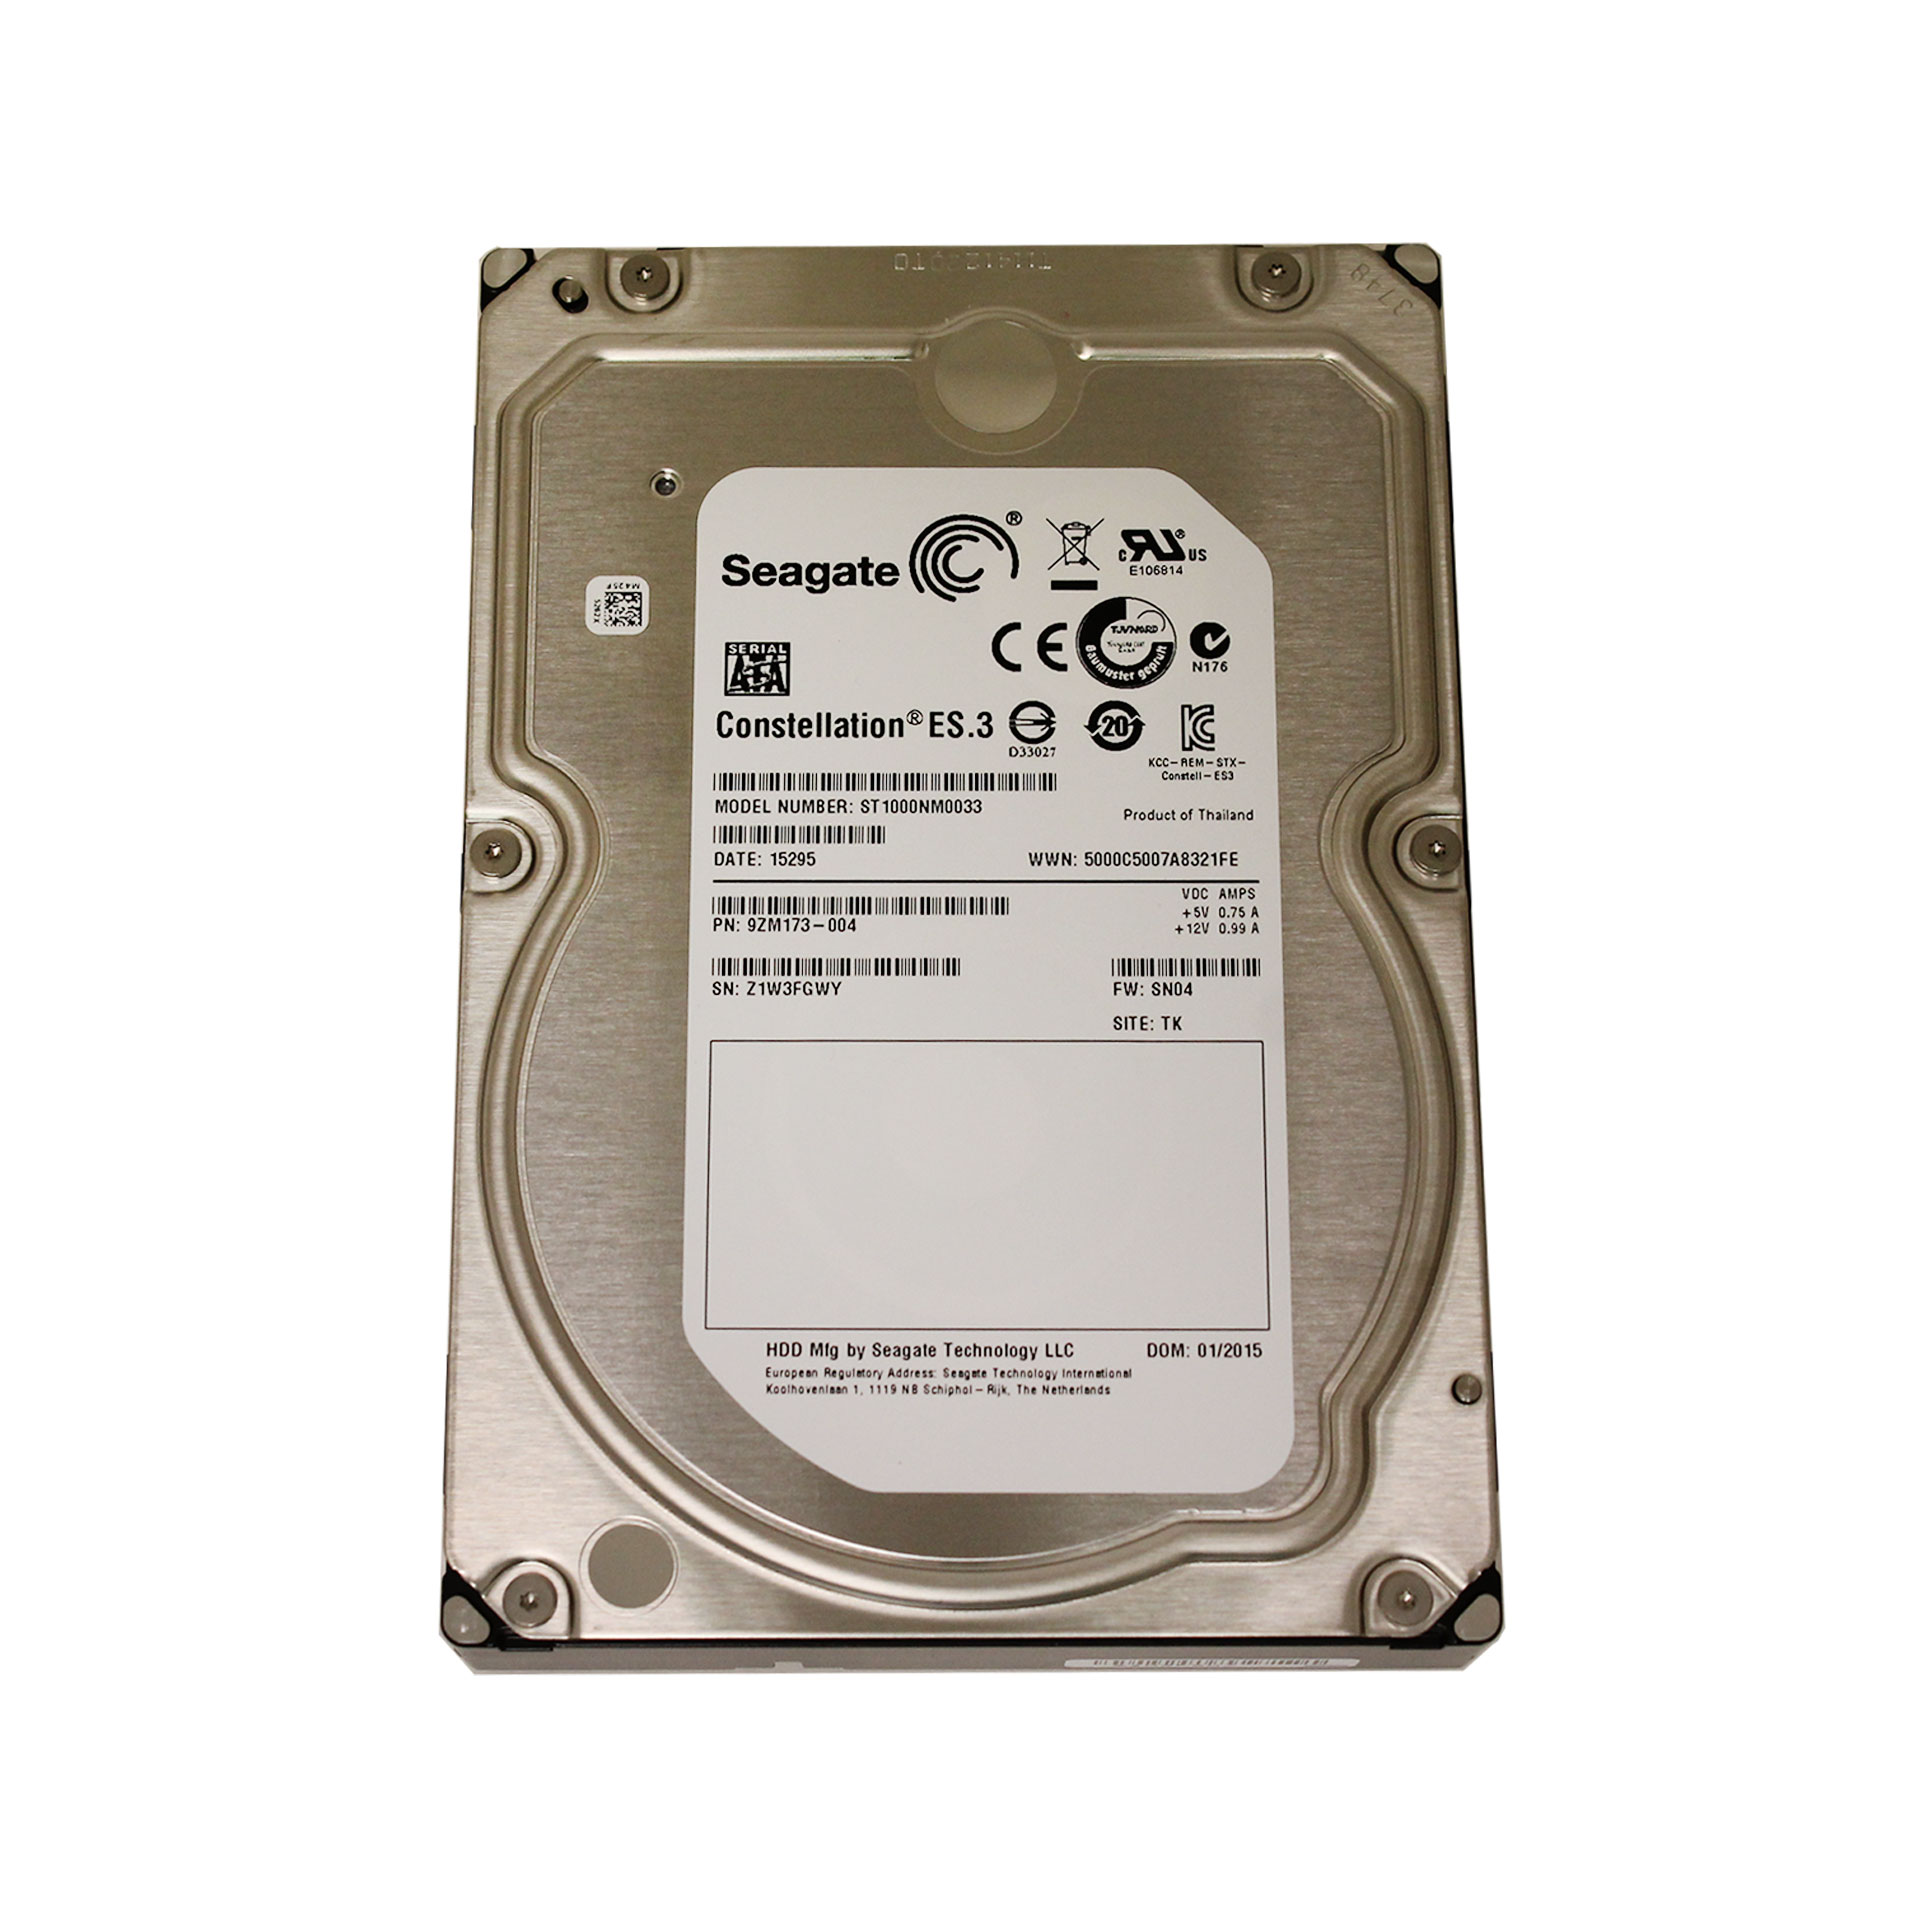 "Seagate Constellation ES.3 HDD 1TB ST1000NM0033 3.5"" SATA 6Gb/s"